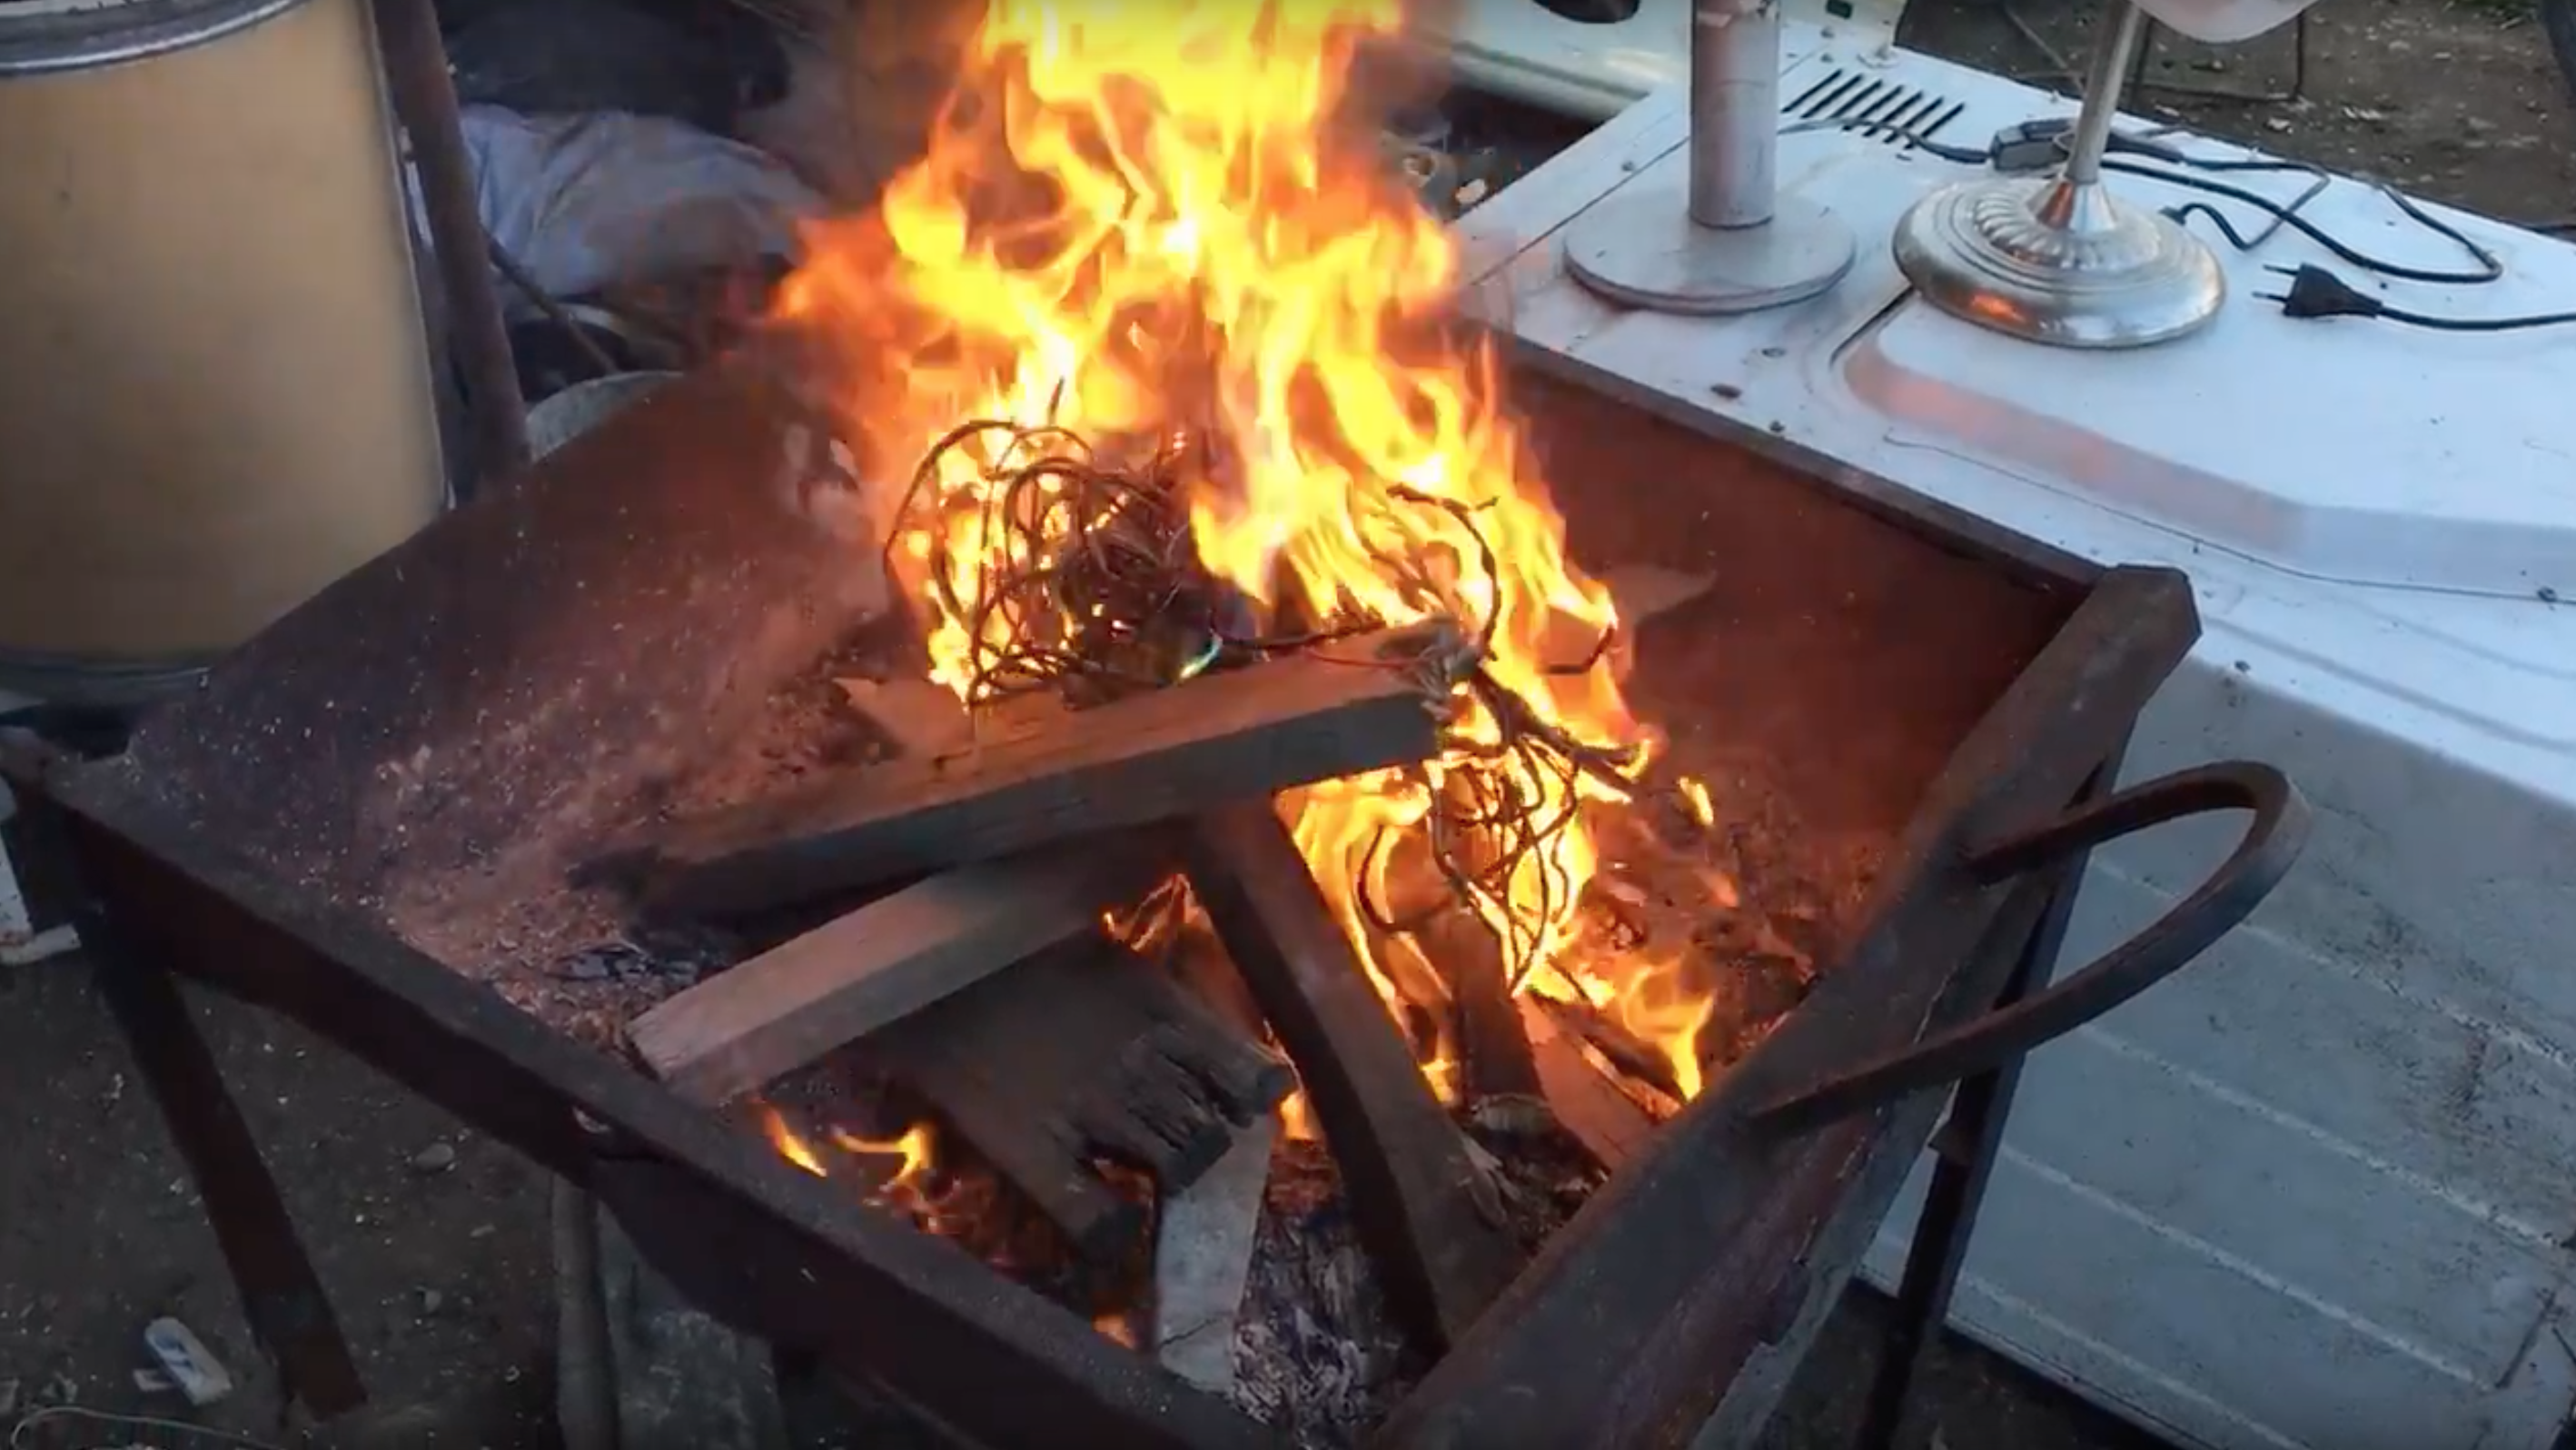 To get to the copper within, wires are burned in a grill in Santiago, Chile.